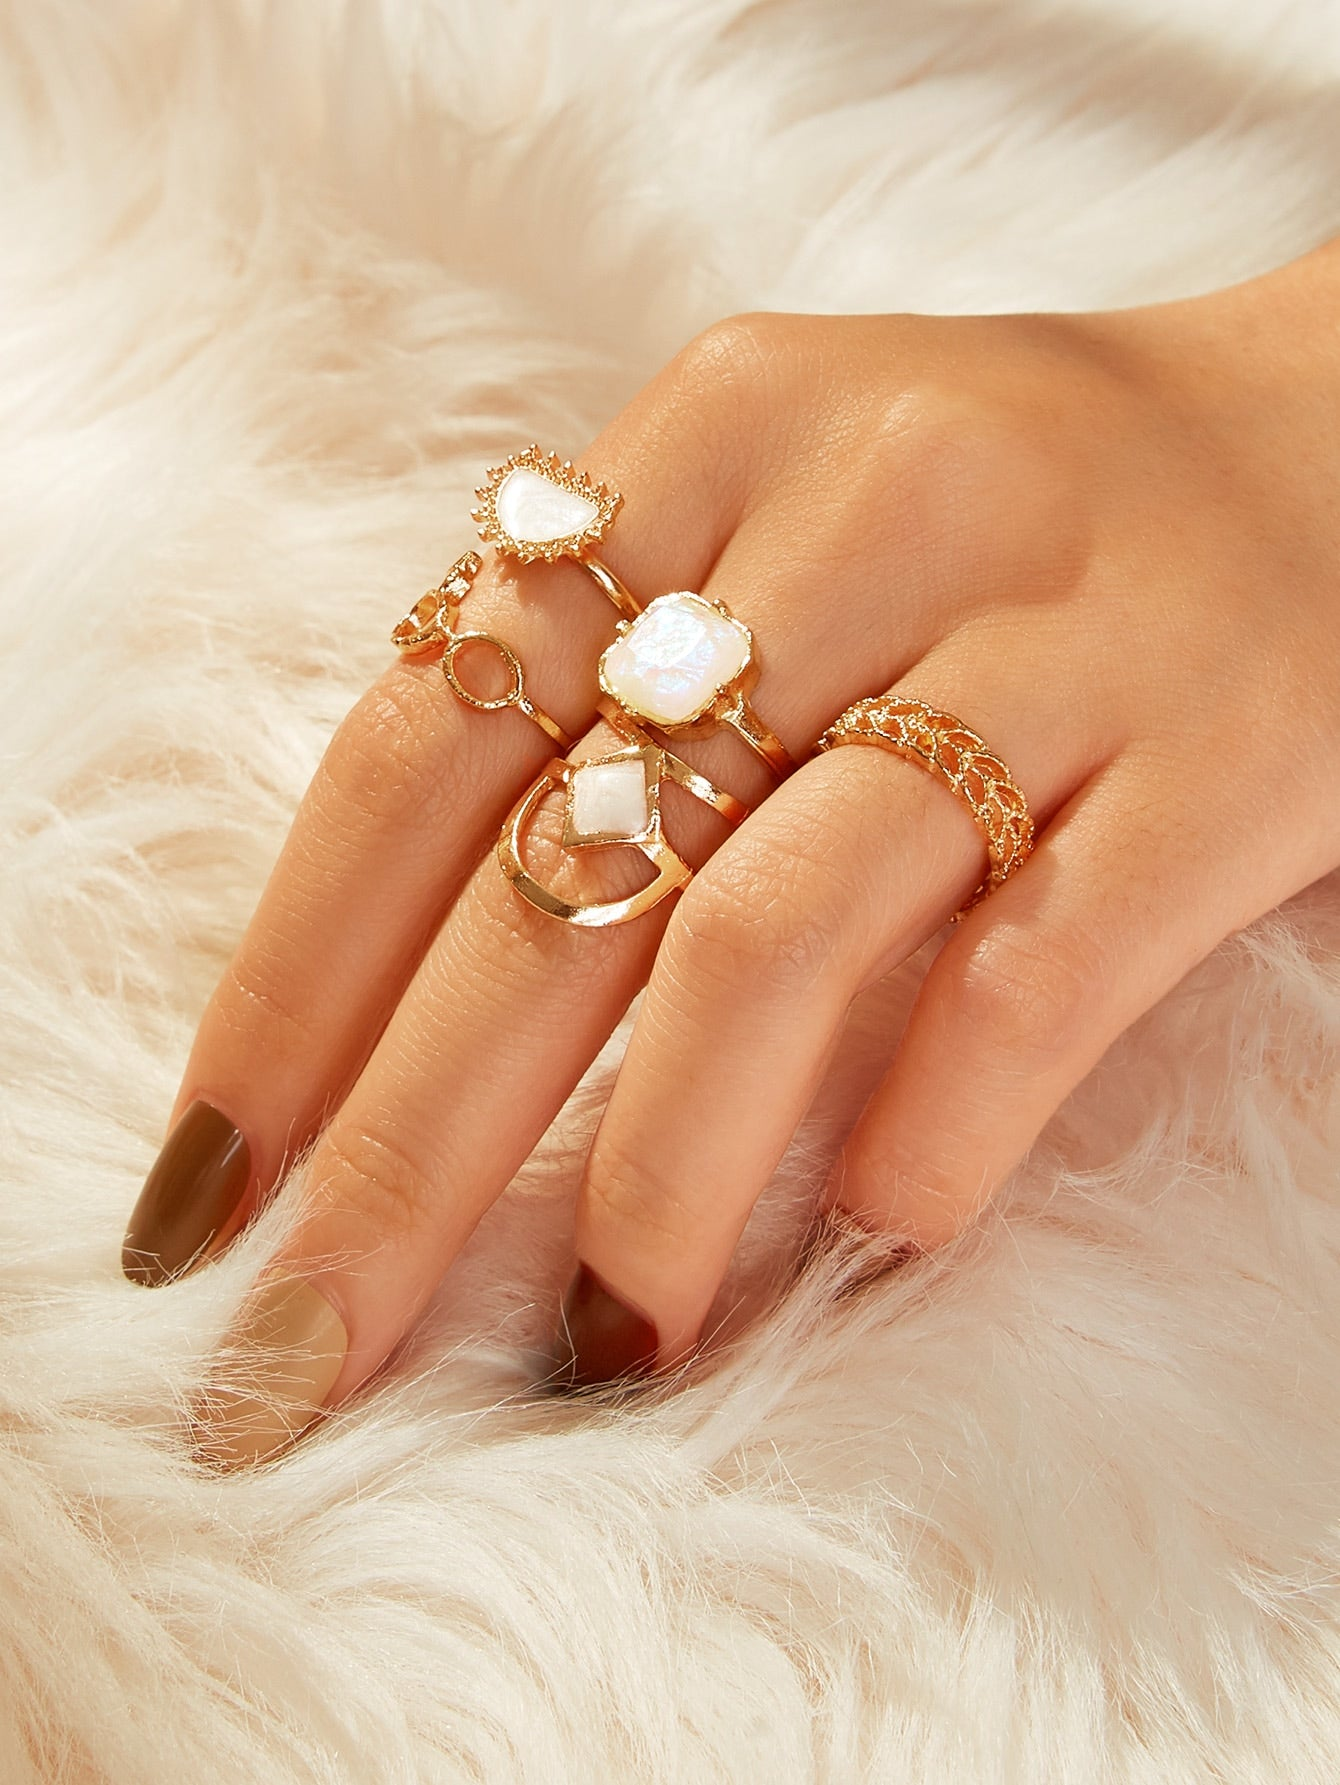 Golden Hollow Out Gemstone 5pcs Ring